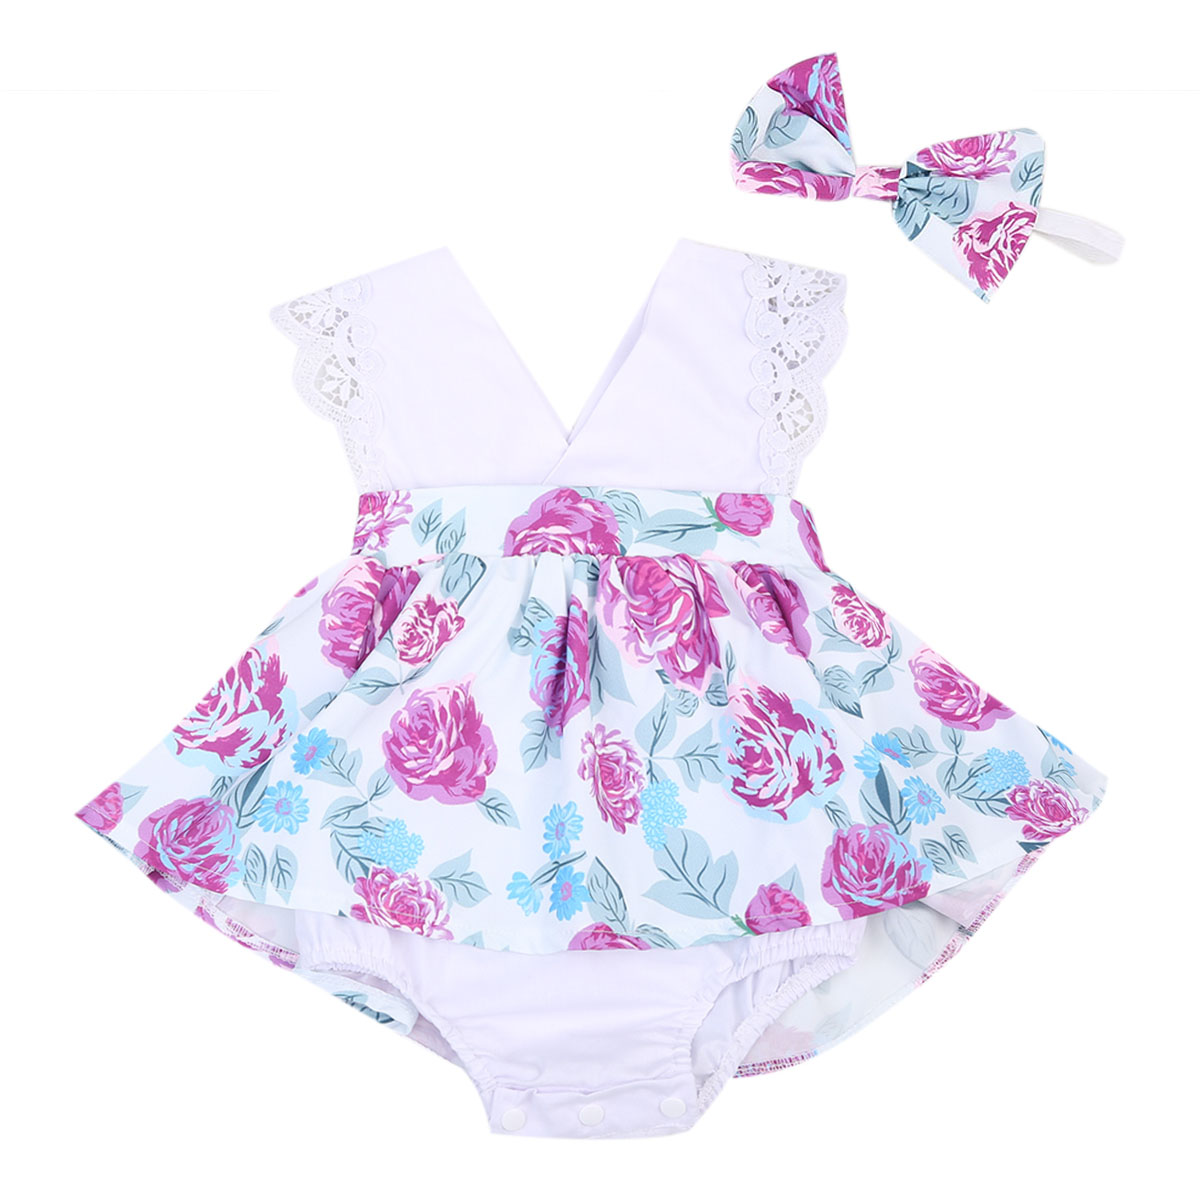 Infant Baby Kids Girls Outfits Flower Printed Romper Dress +Headband Clothes 2PCS baby girl clothes princess lace romper купить дешево онлайн